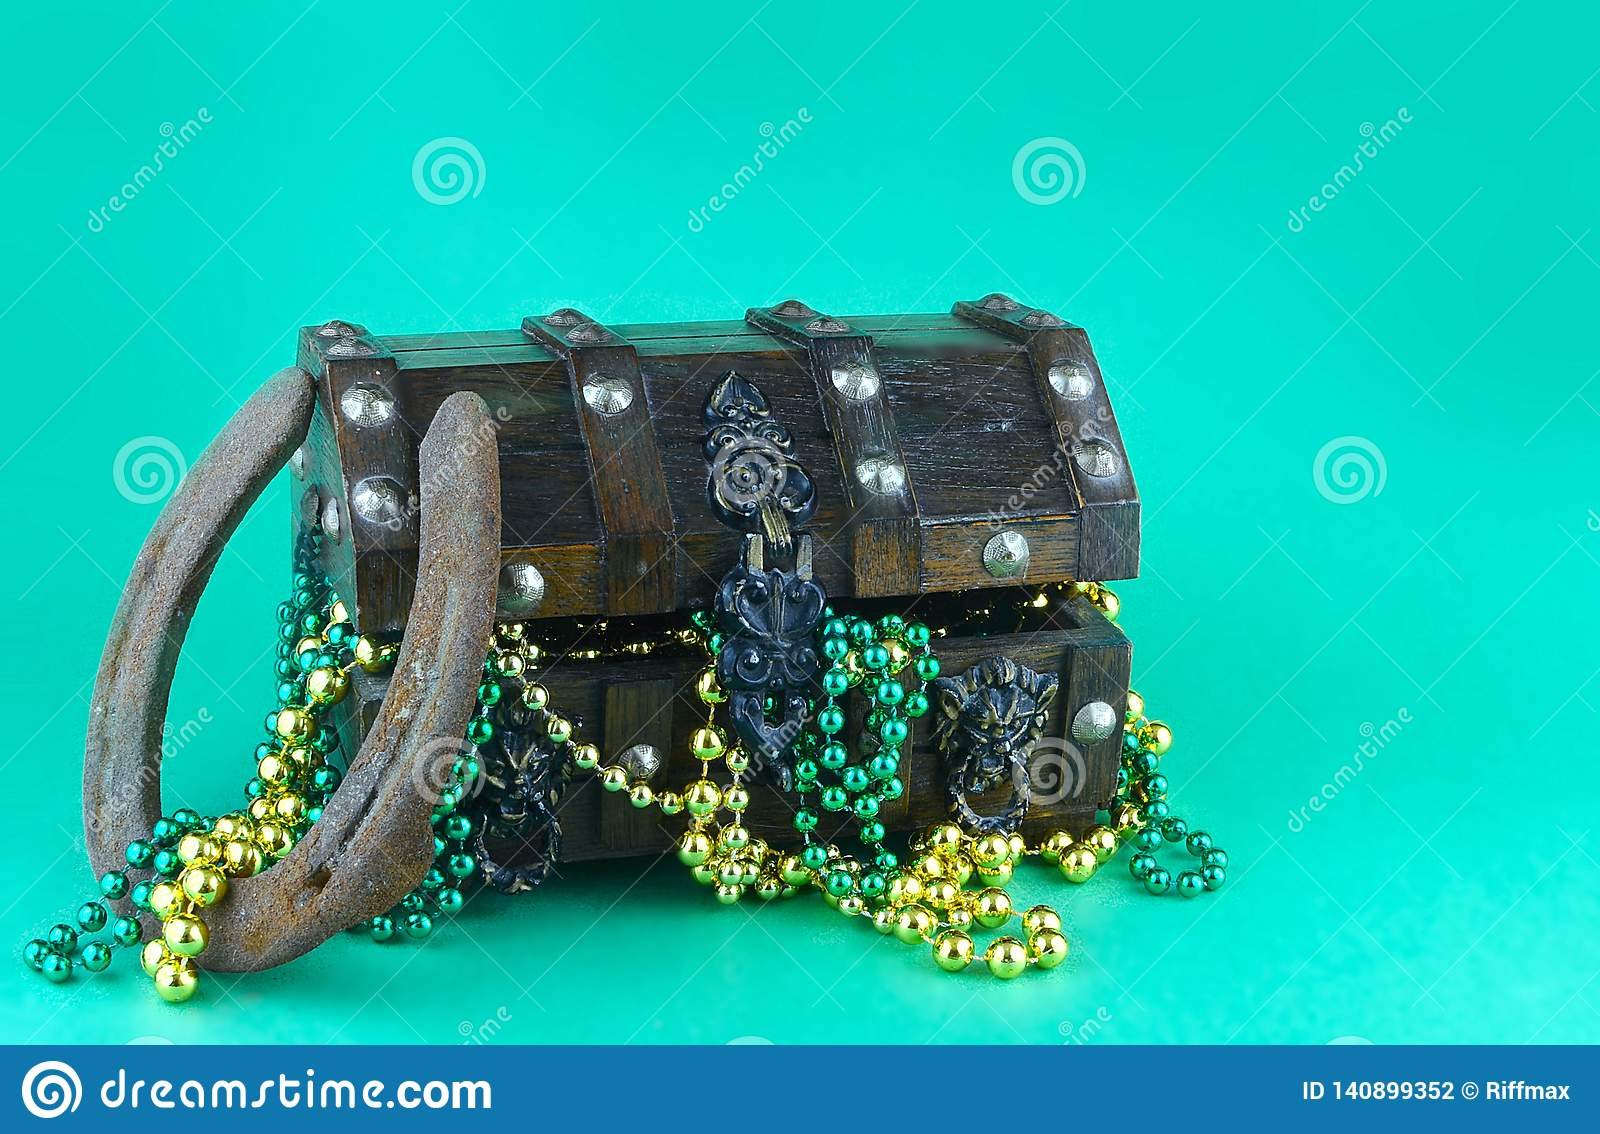 Image for Saint Patrick`s Day on March 17th. Treasure chest to symbolize luck and wealth filled with shiny beads.